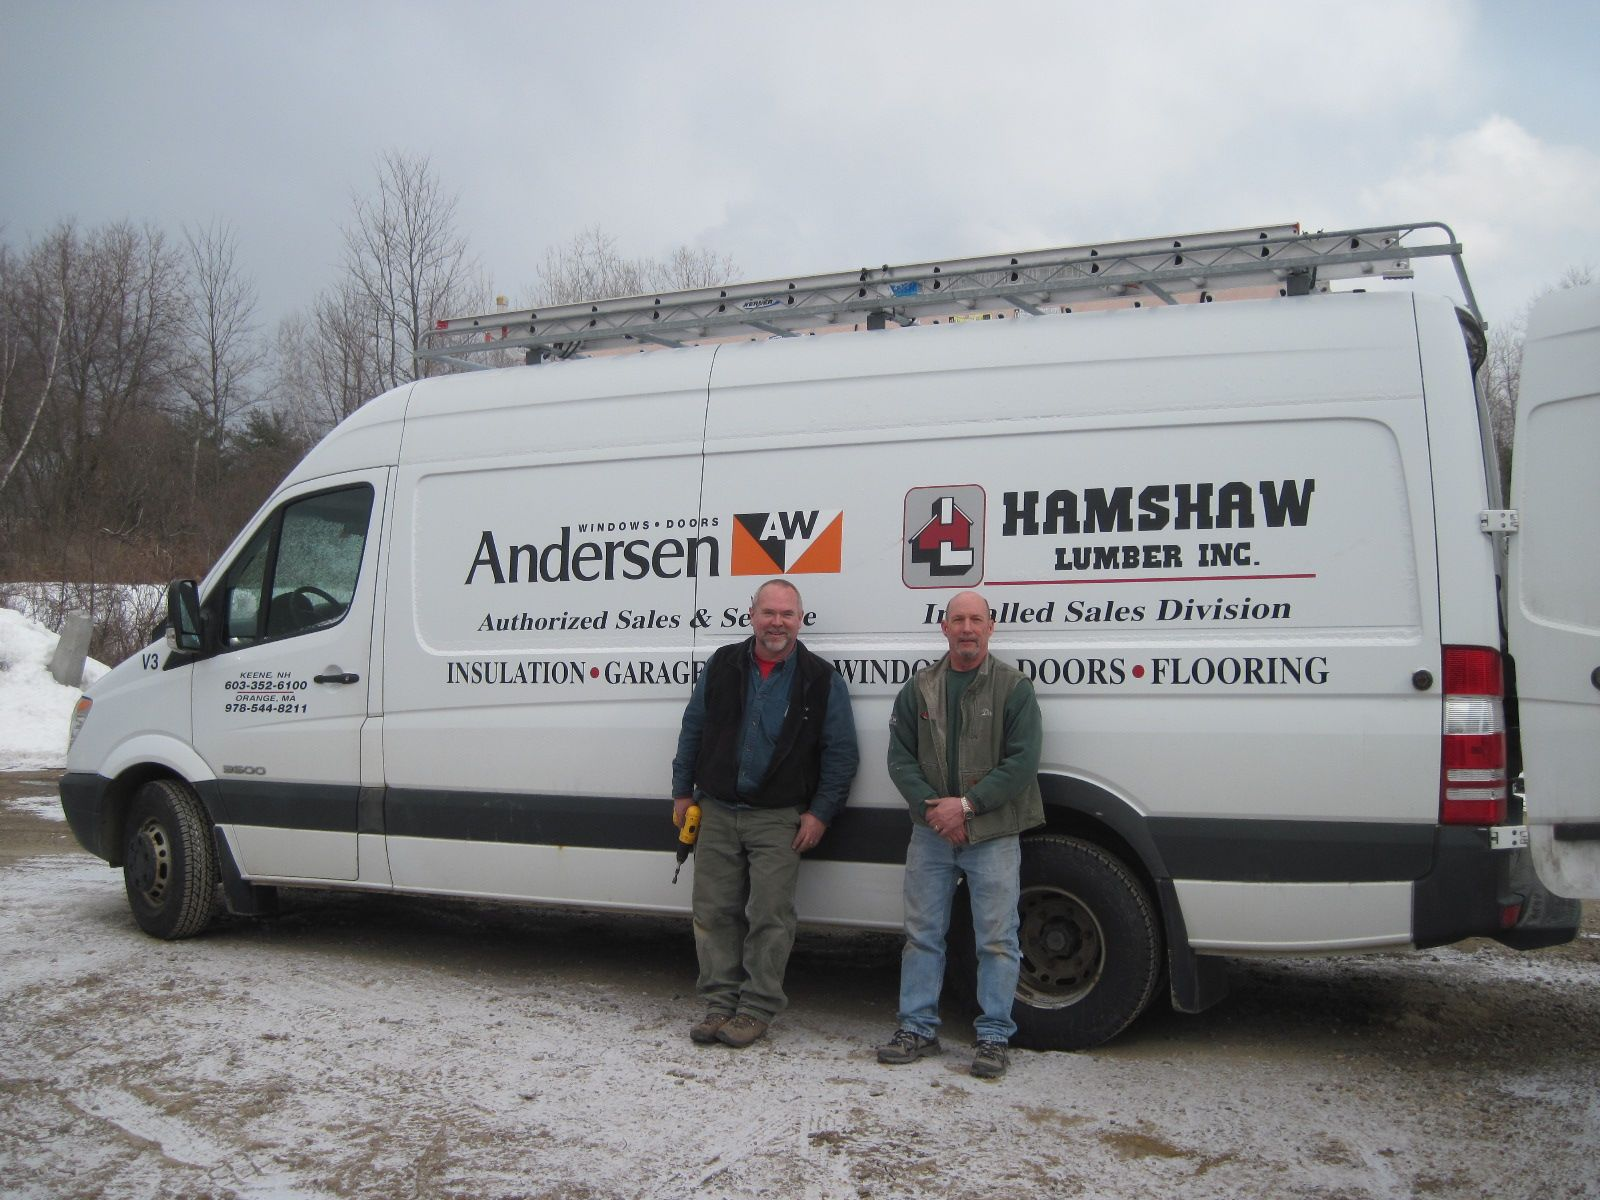 Hamshaw Lumber in Keene, NH offers a wide variety of ...